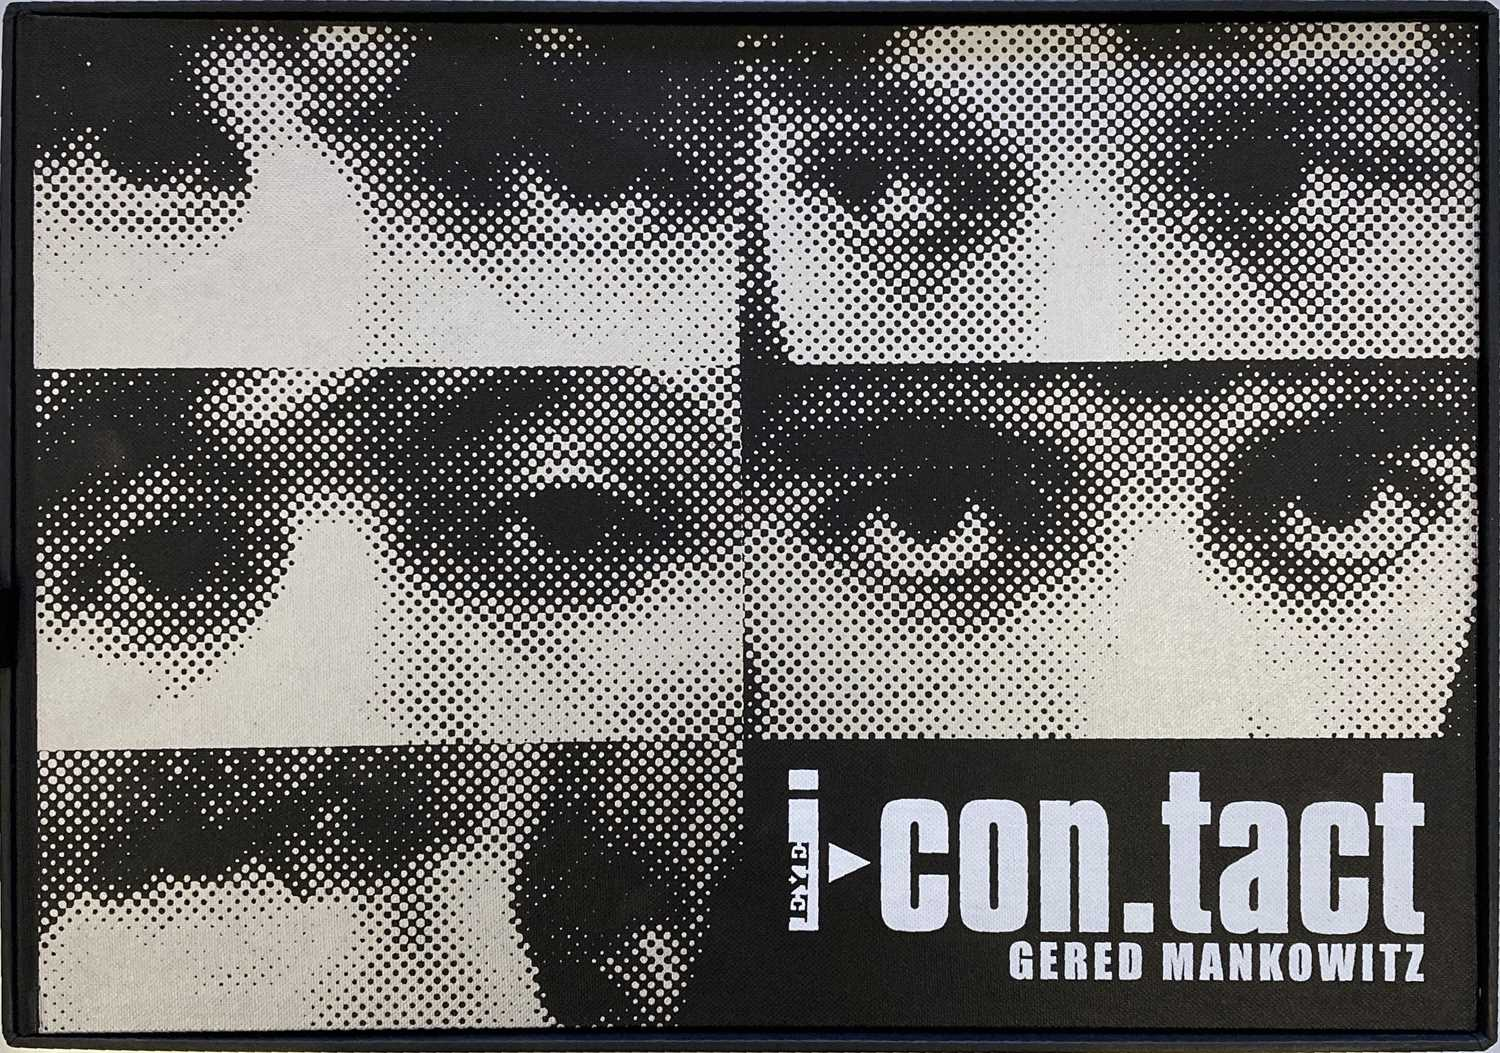 GERED MANKOWITZ - EYE CONTACT LIMITED EDITION ROLLING STONES GENESIS BOOK. - Image 3 of 6